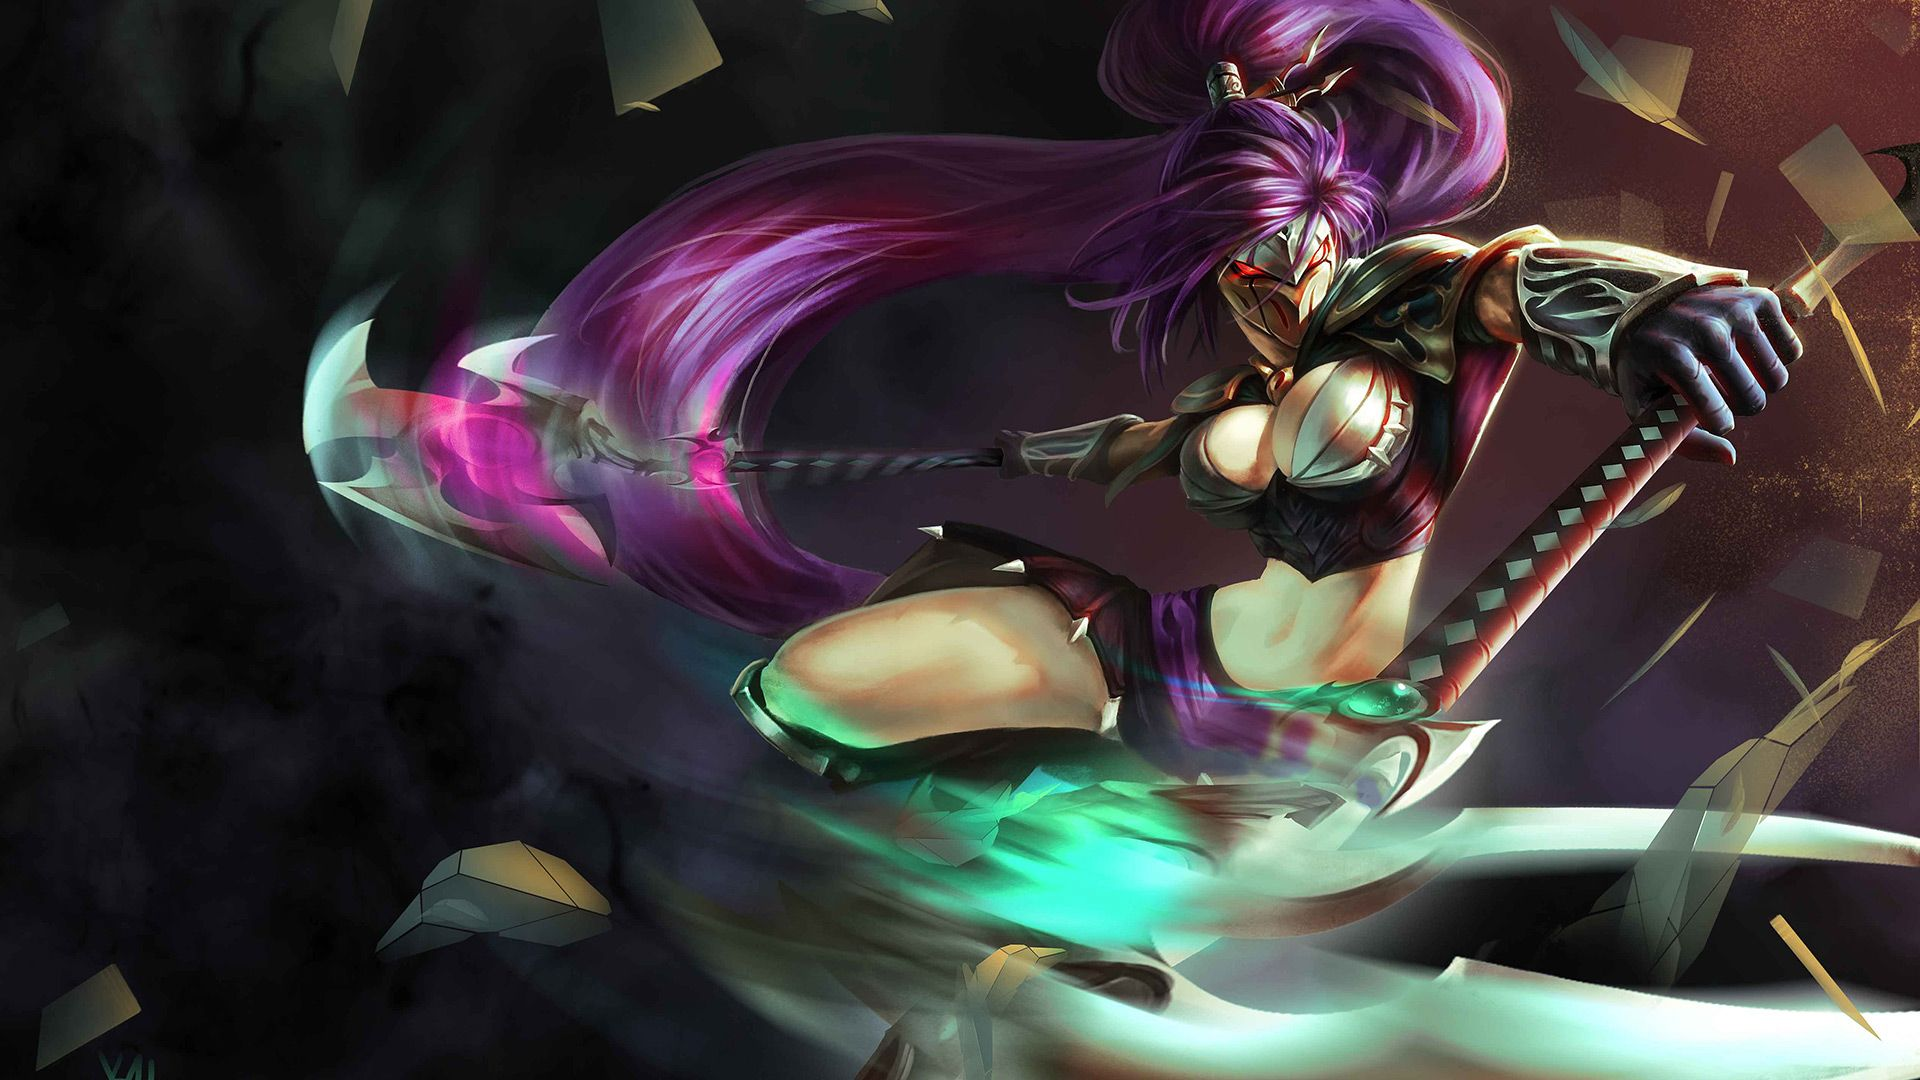 Download Wallpaper Fanart Trickster Akali Mask Skin Full Hd On